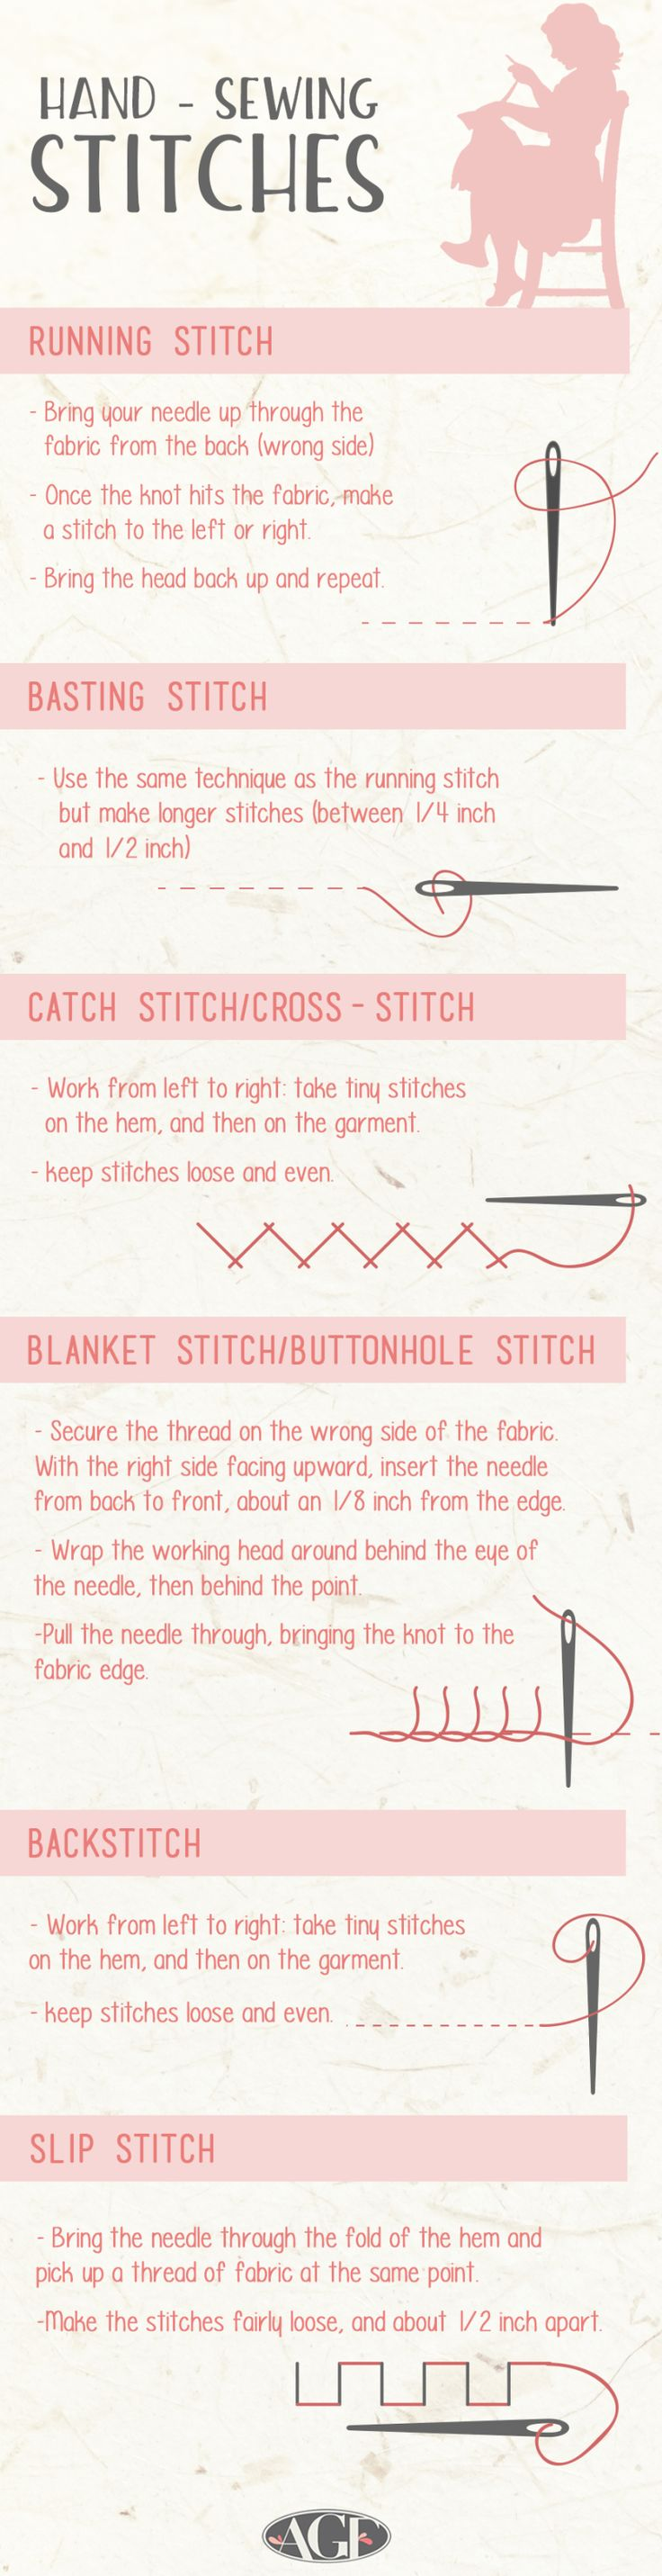 Hand Sewing Stitches Guide